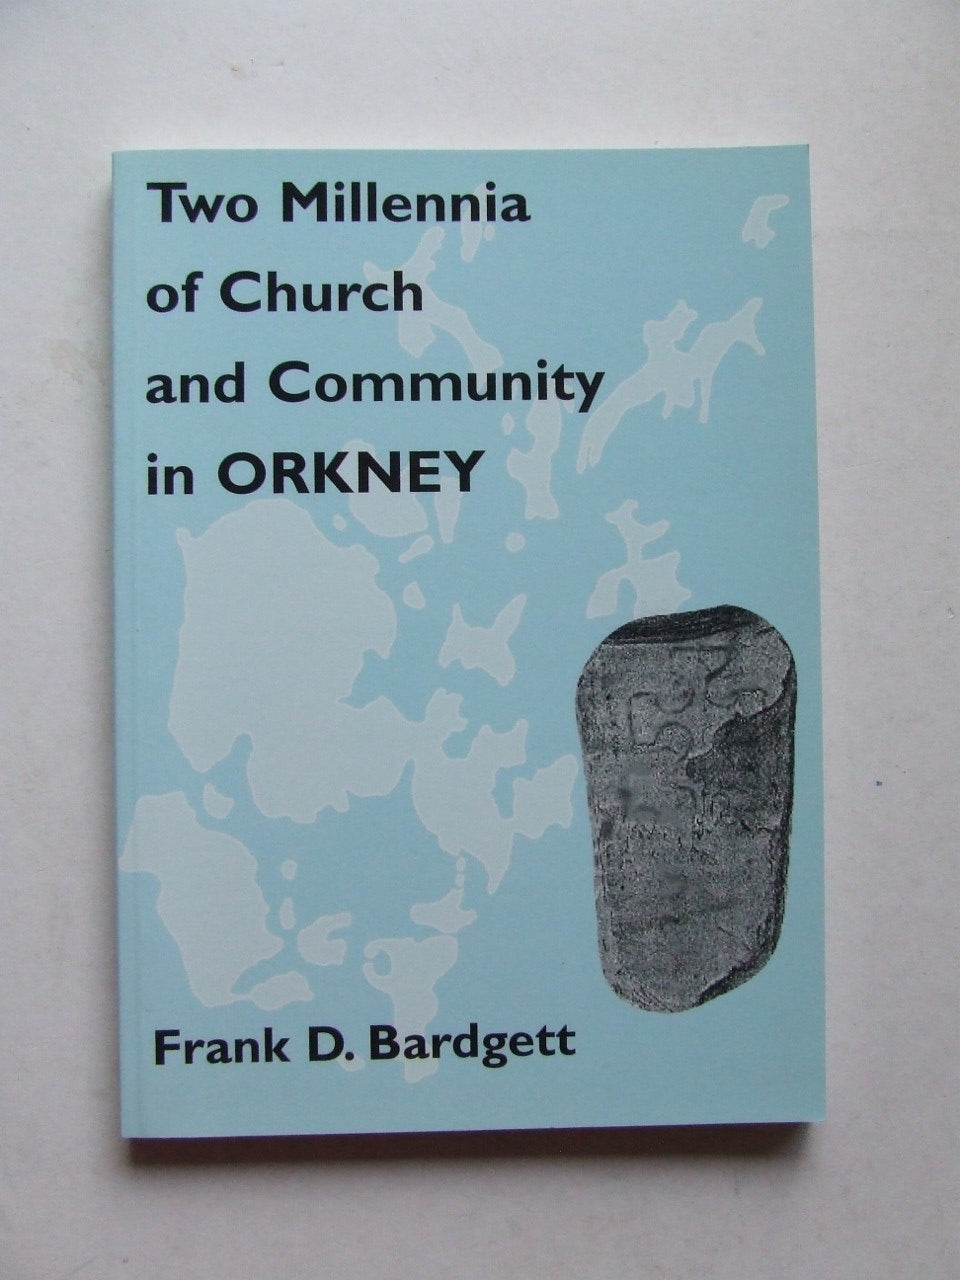 Two Millennia of Church and Community in Orkney